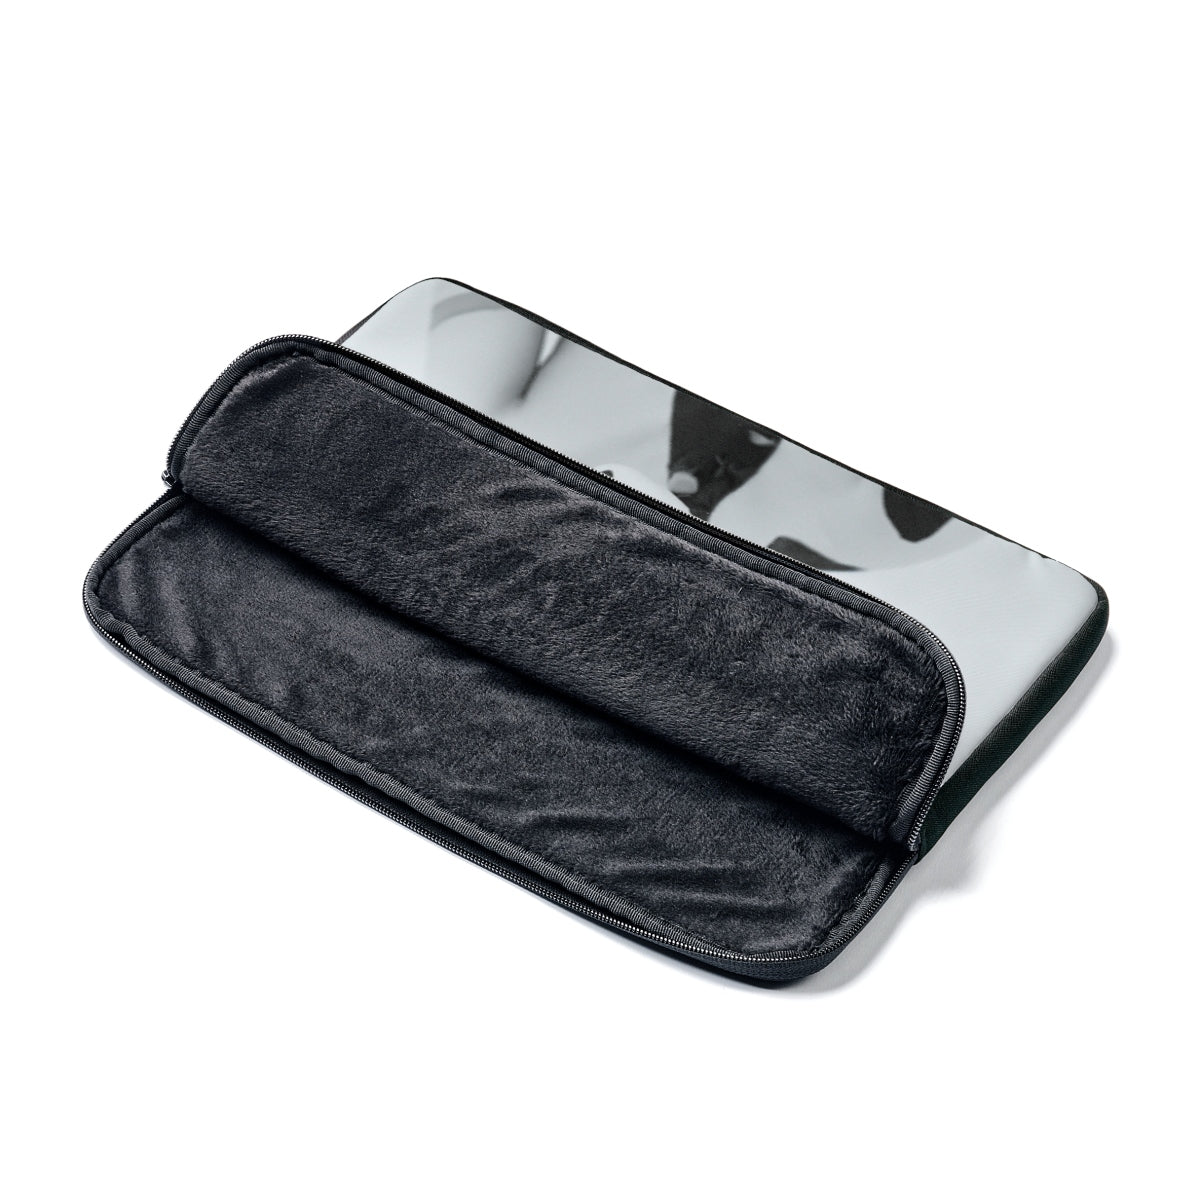 Gelid Laptop Sleeve